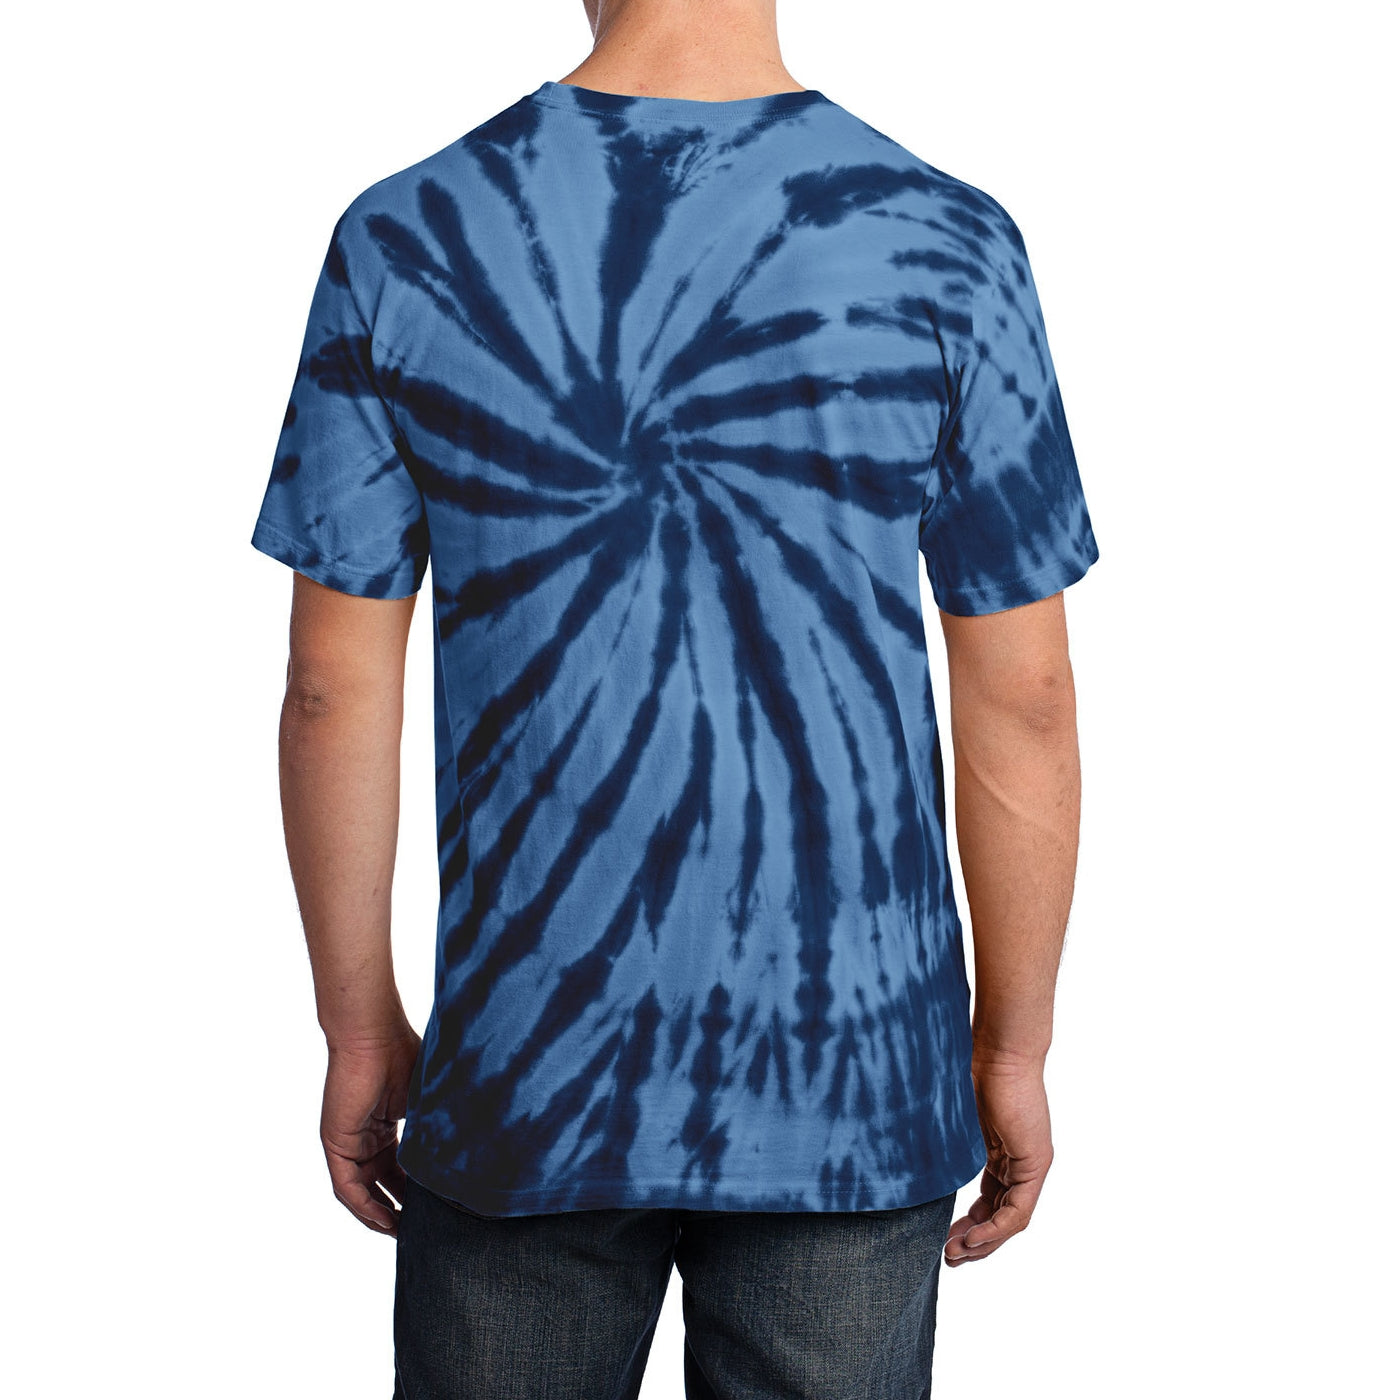 Men's Tie-Dye Tee - Navy - Back